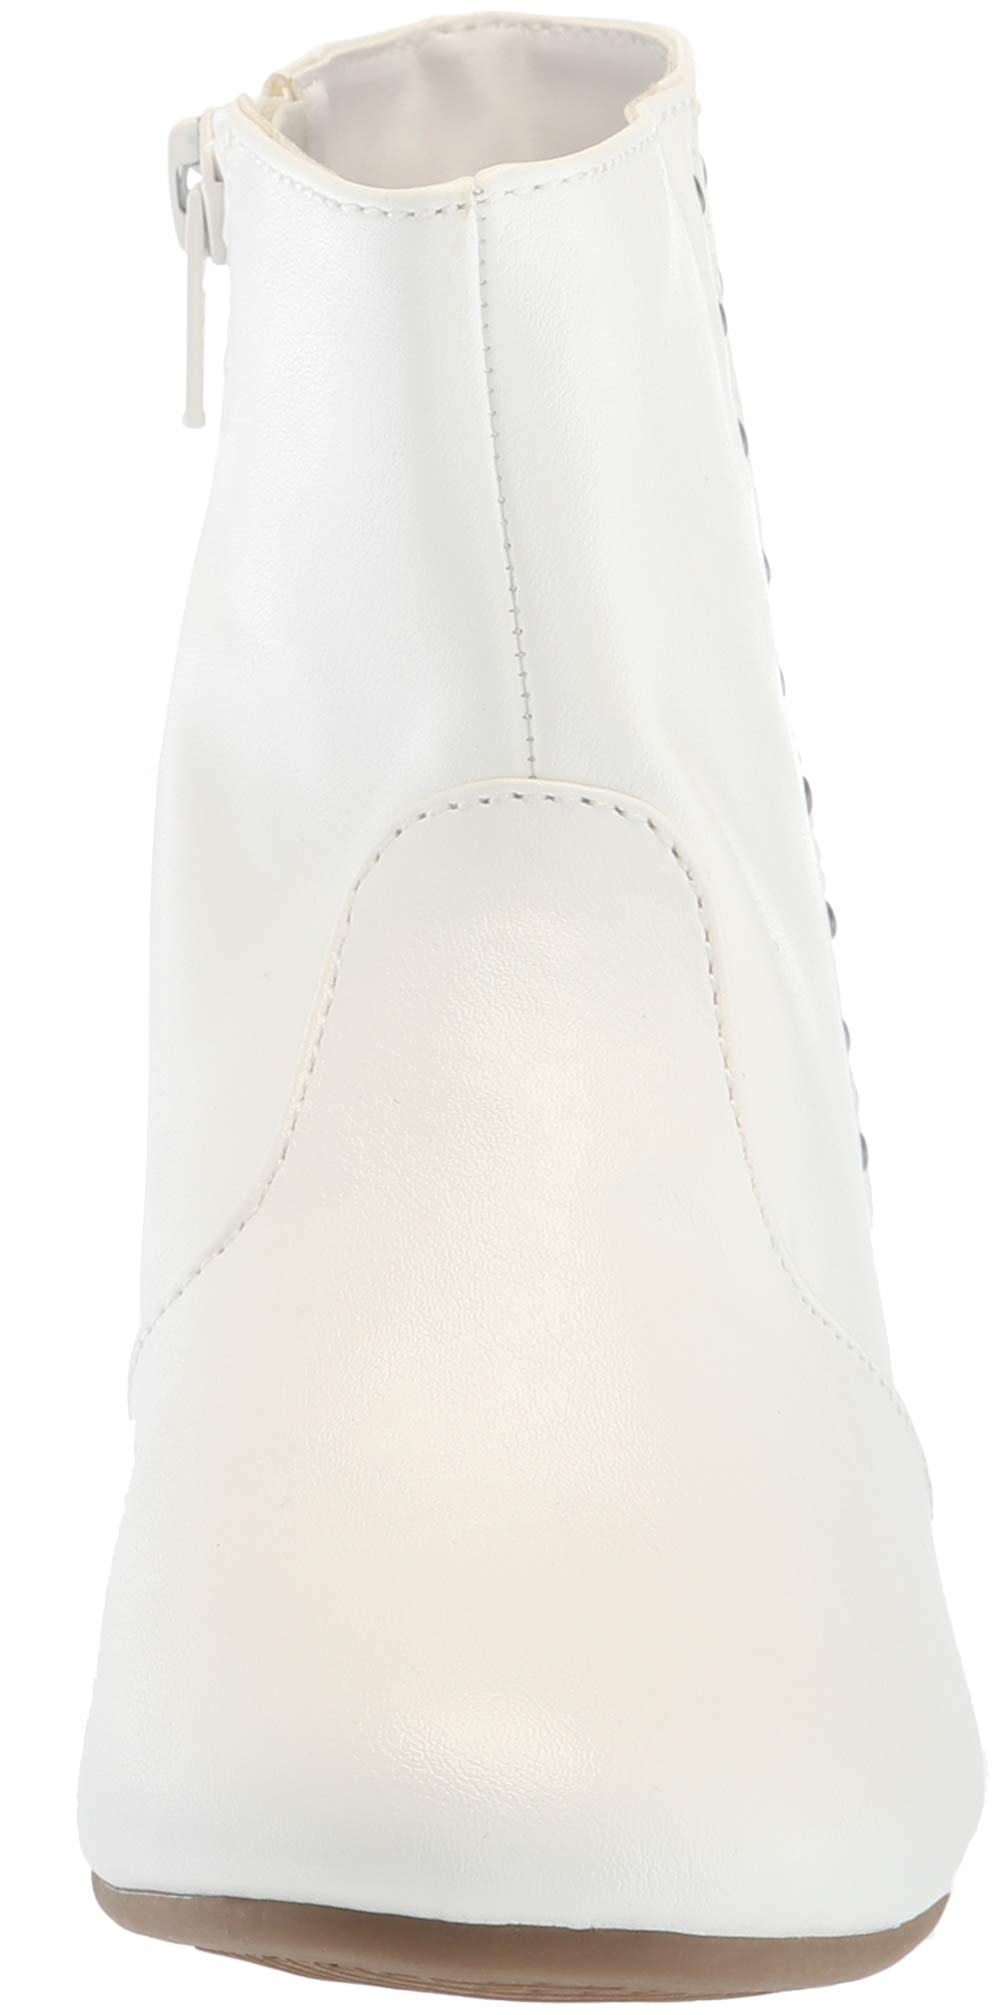 The Children's Place Girls' Bootie Fashion Boot, White, Youth 3 Child US Little Kid by The Children's Place (Image #4)